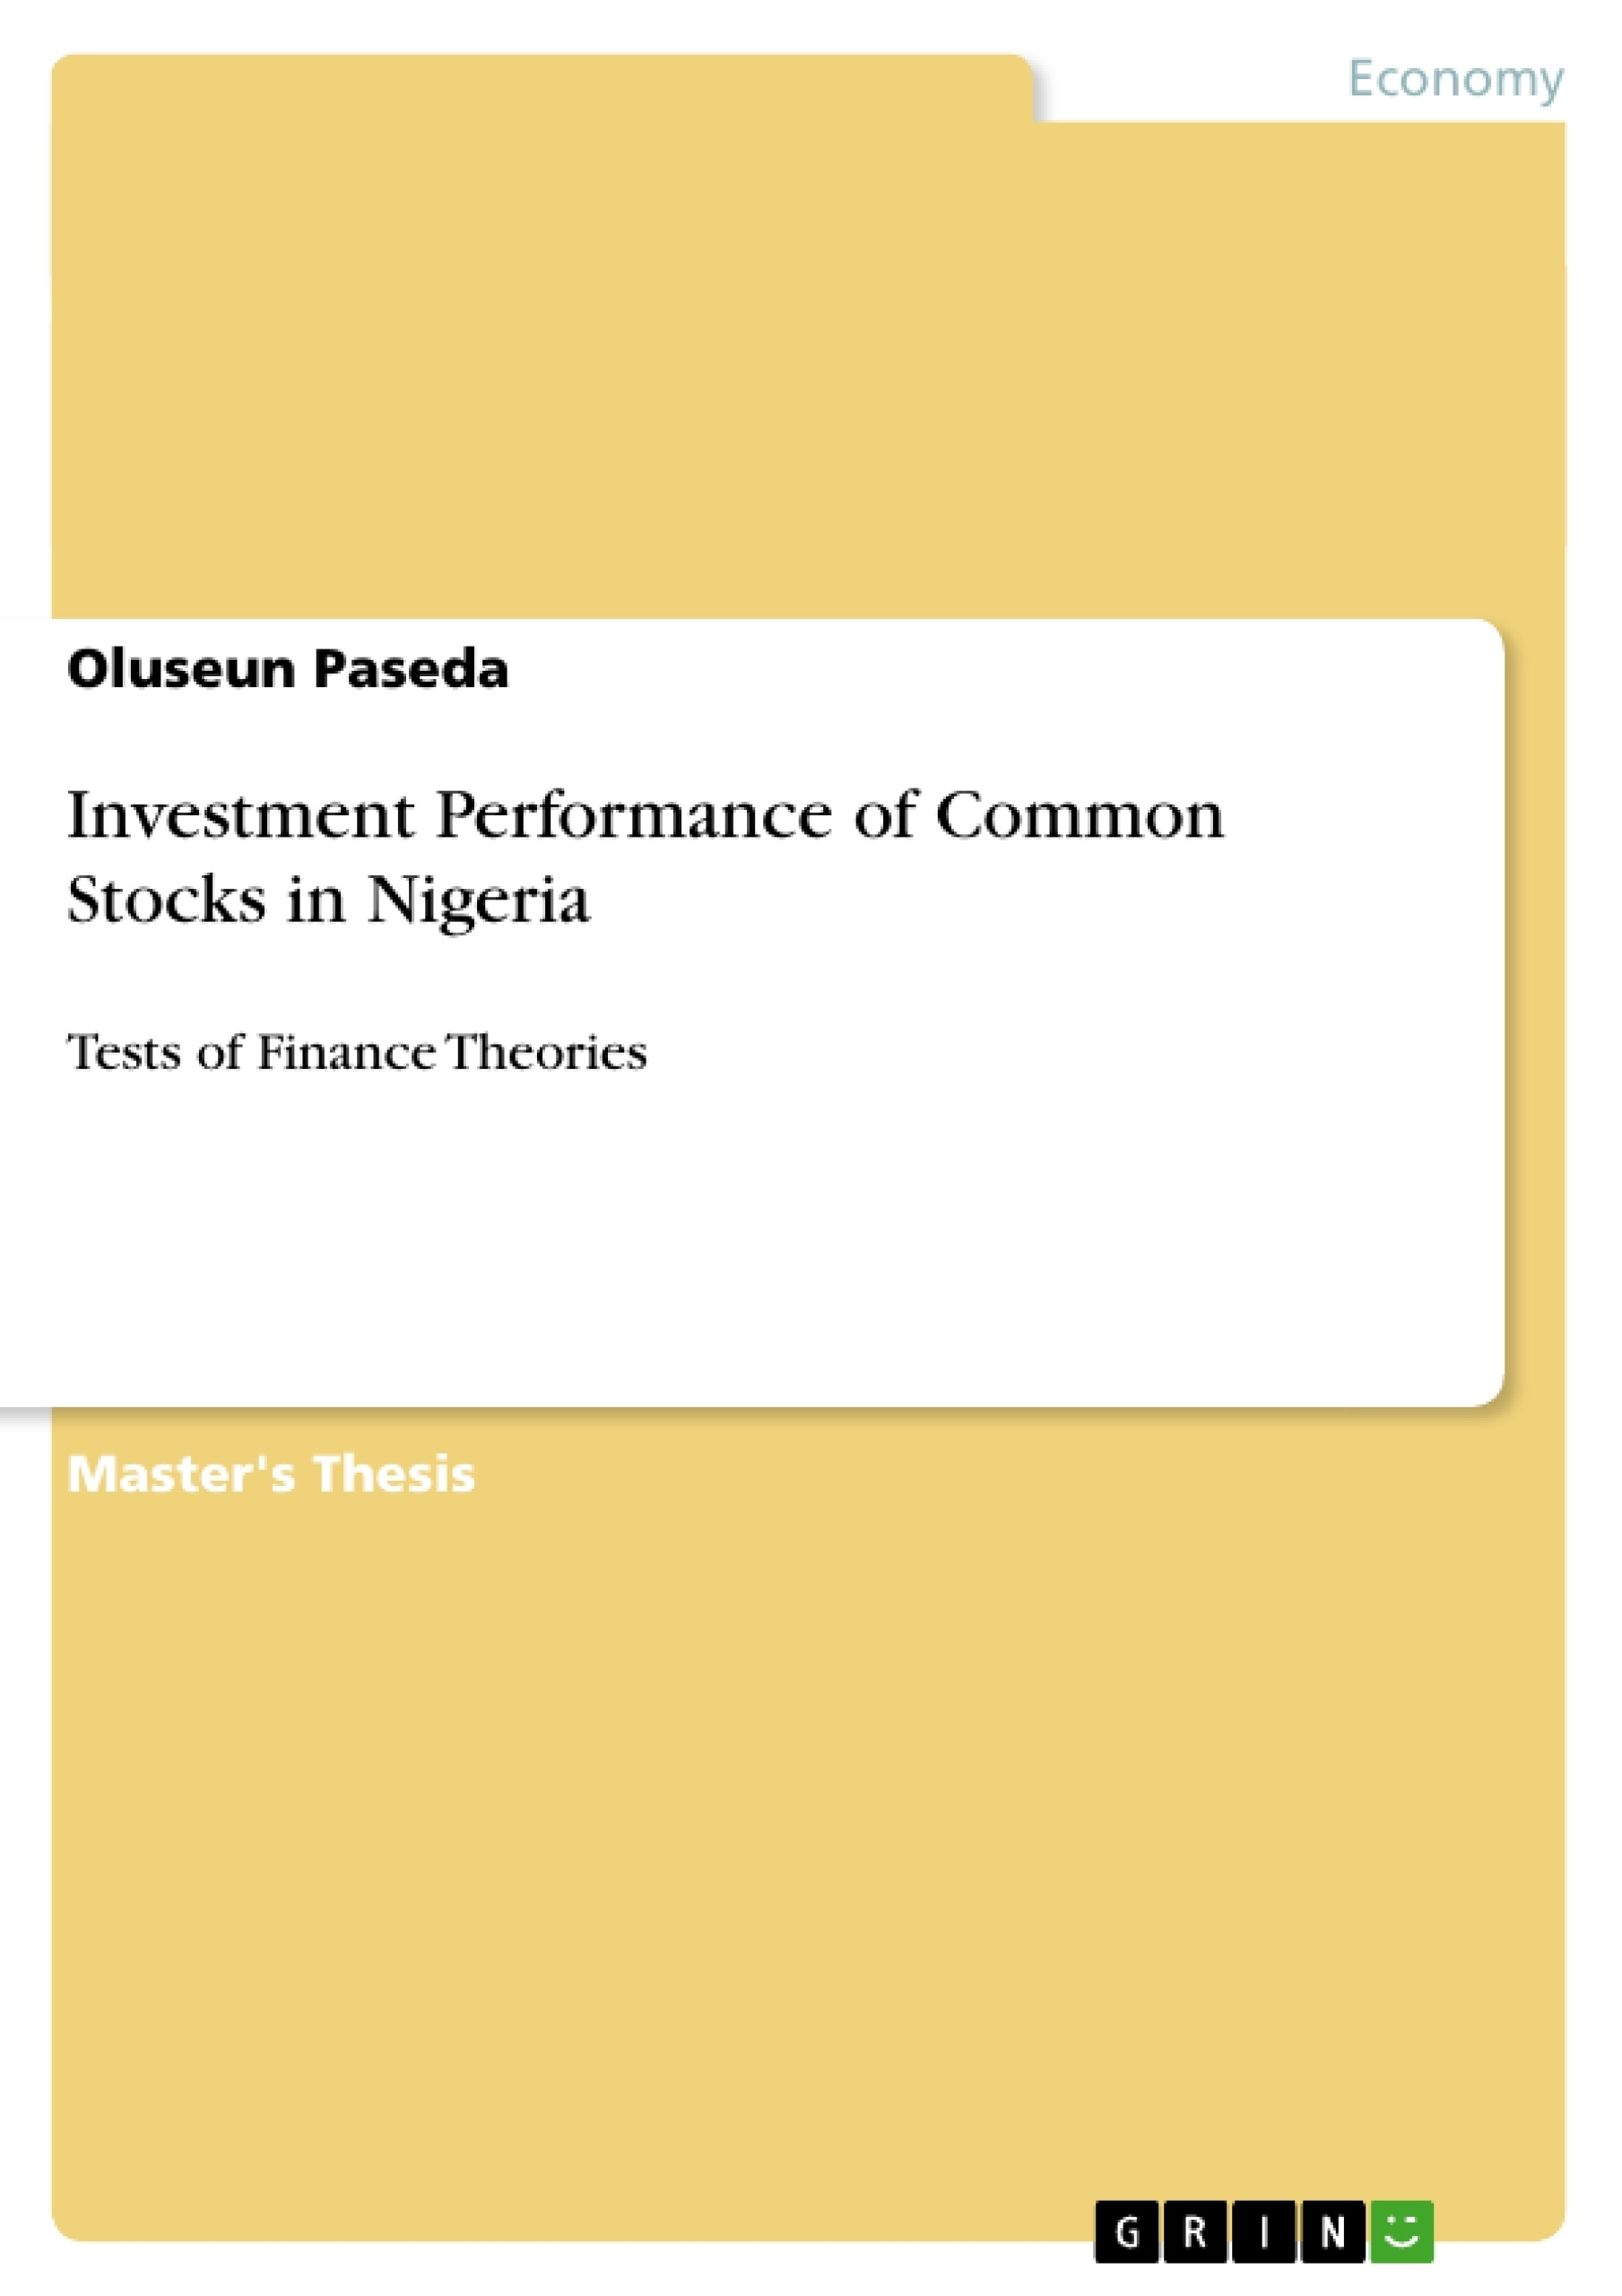 Title: Investment Performance of Common Stocks in Nigeria